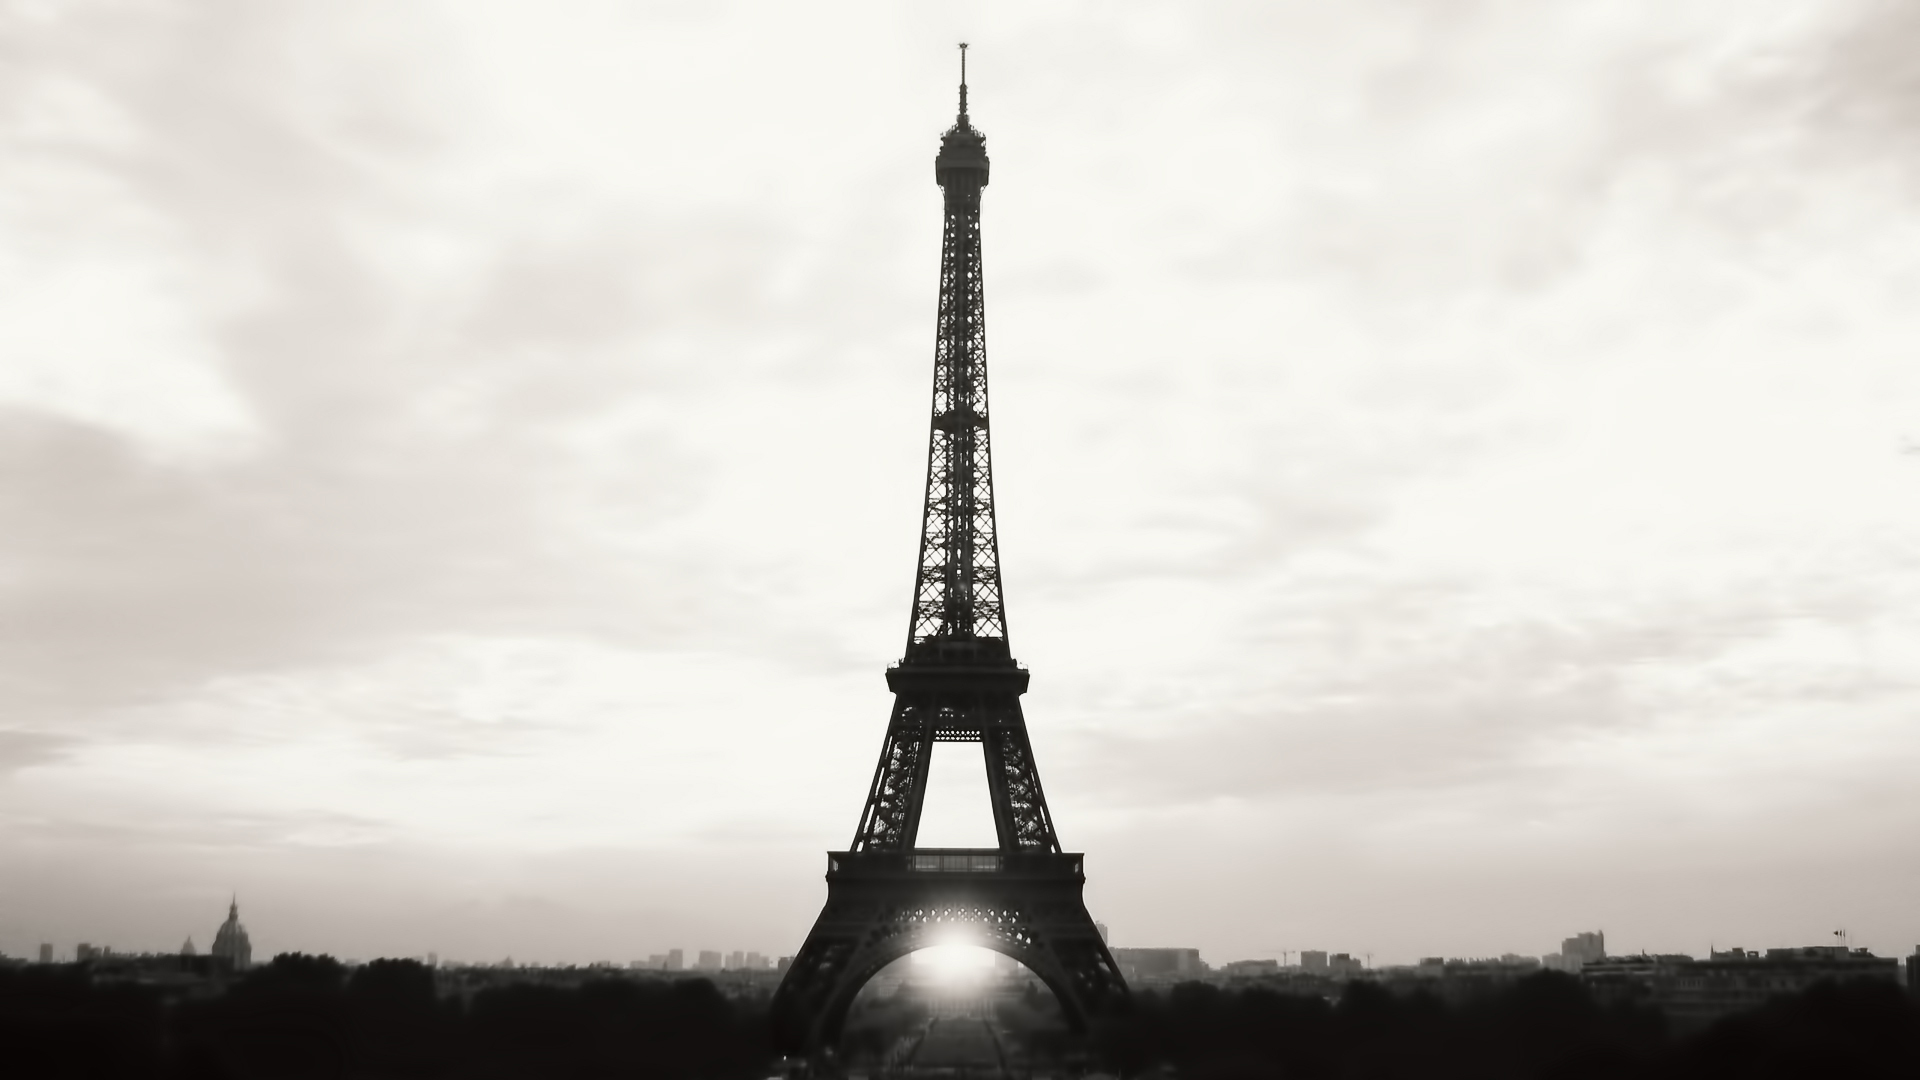 Eiffel Tower Hd Wallpaper Background Image 1920x1080 Id 192999